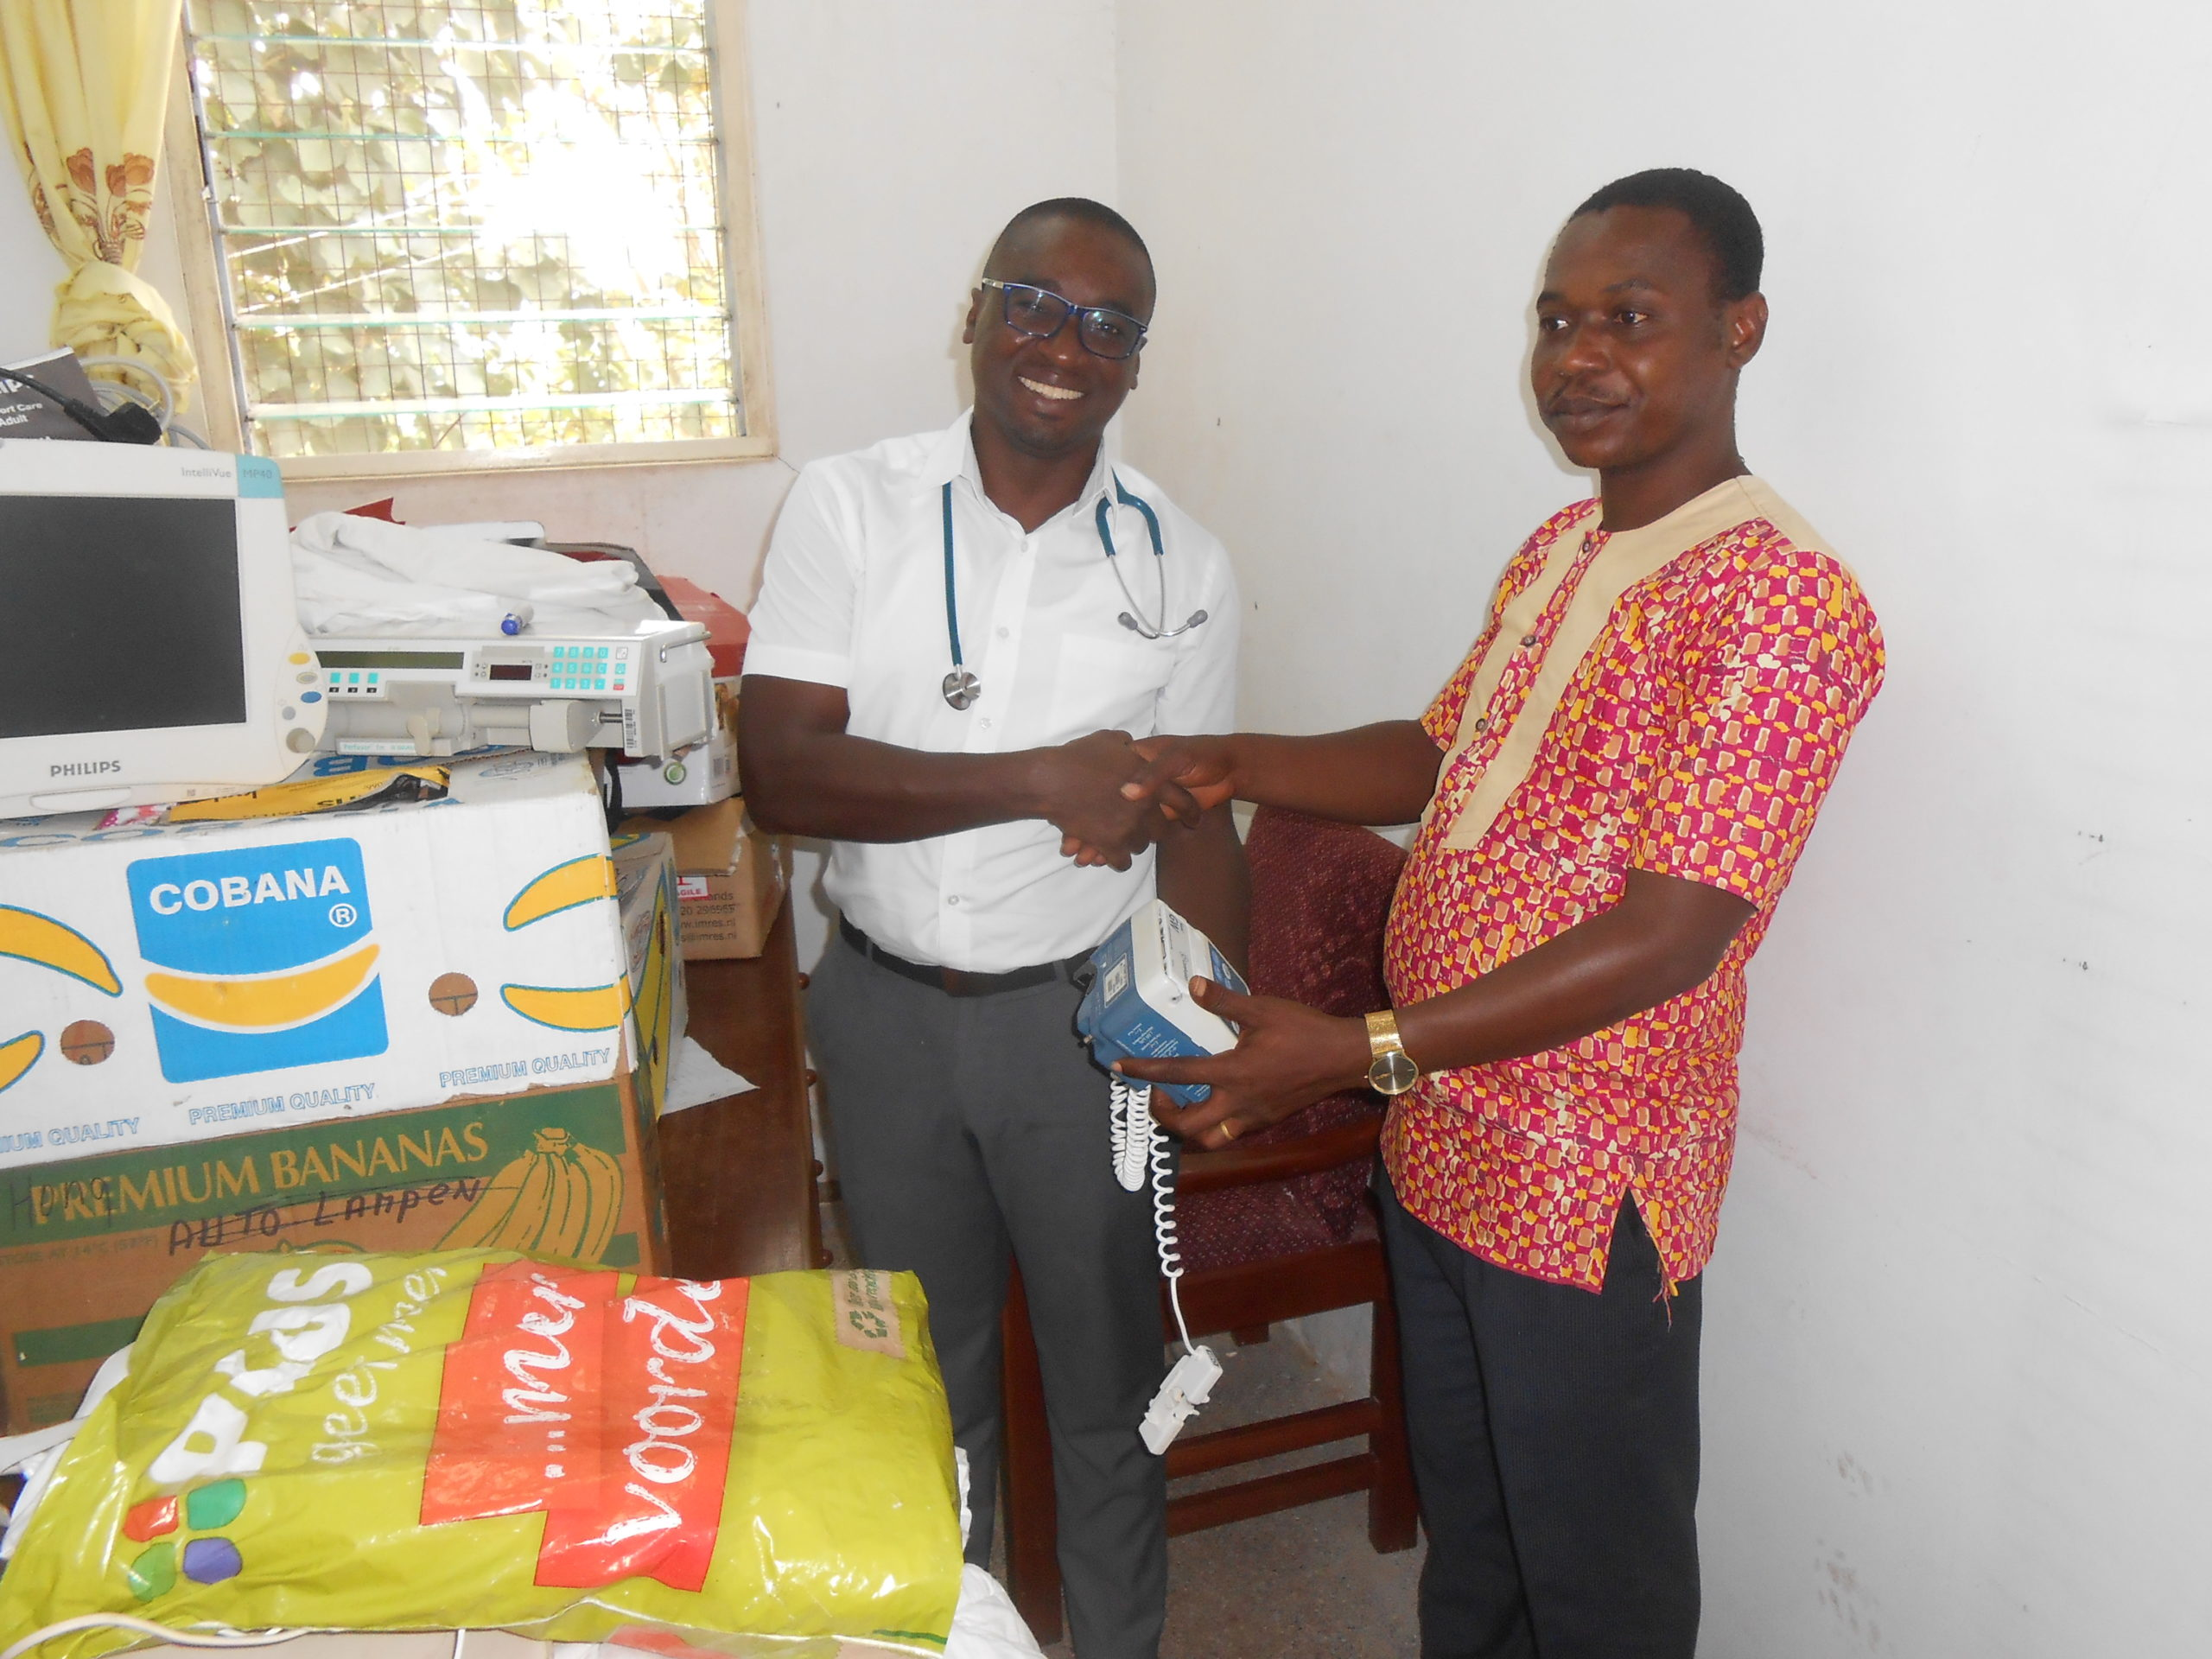 RAYBEN DIAGNOSTICS AND IMAGING LTD DONATES TO THE CHILDREN'S WARD OF PRESBYTERIAN HOSPITAL, AGOGO